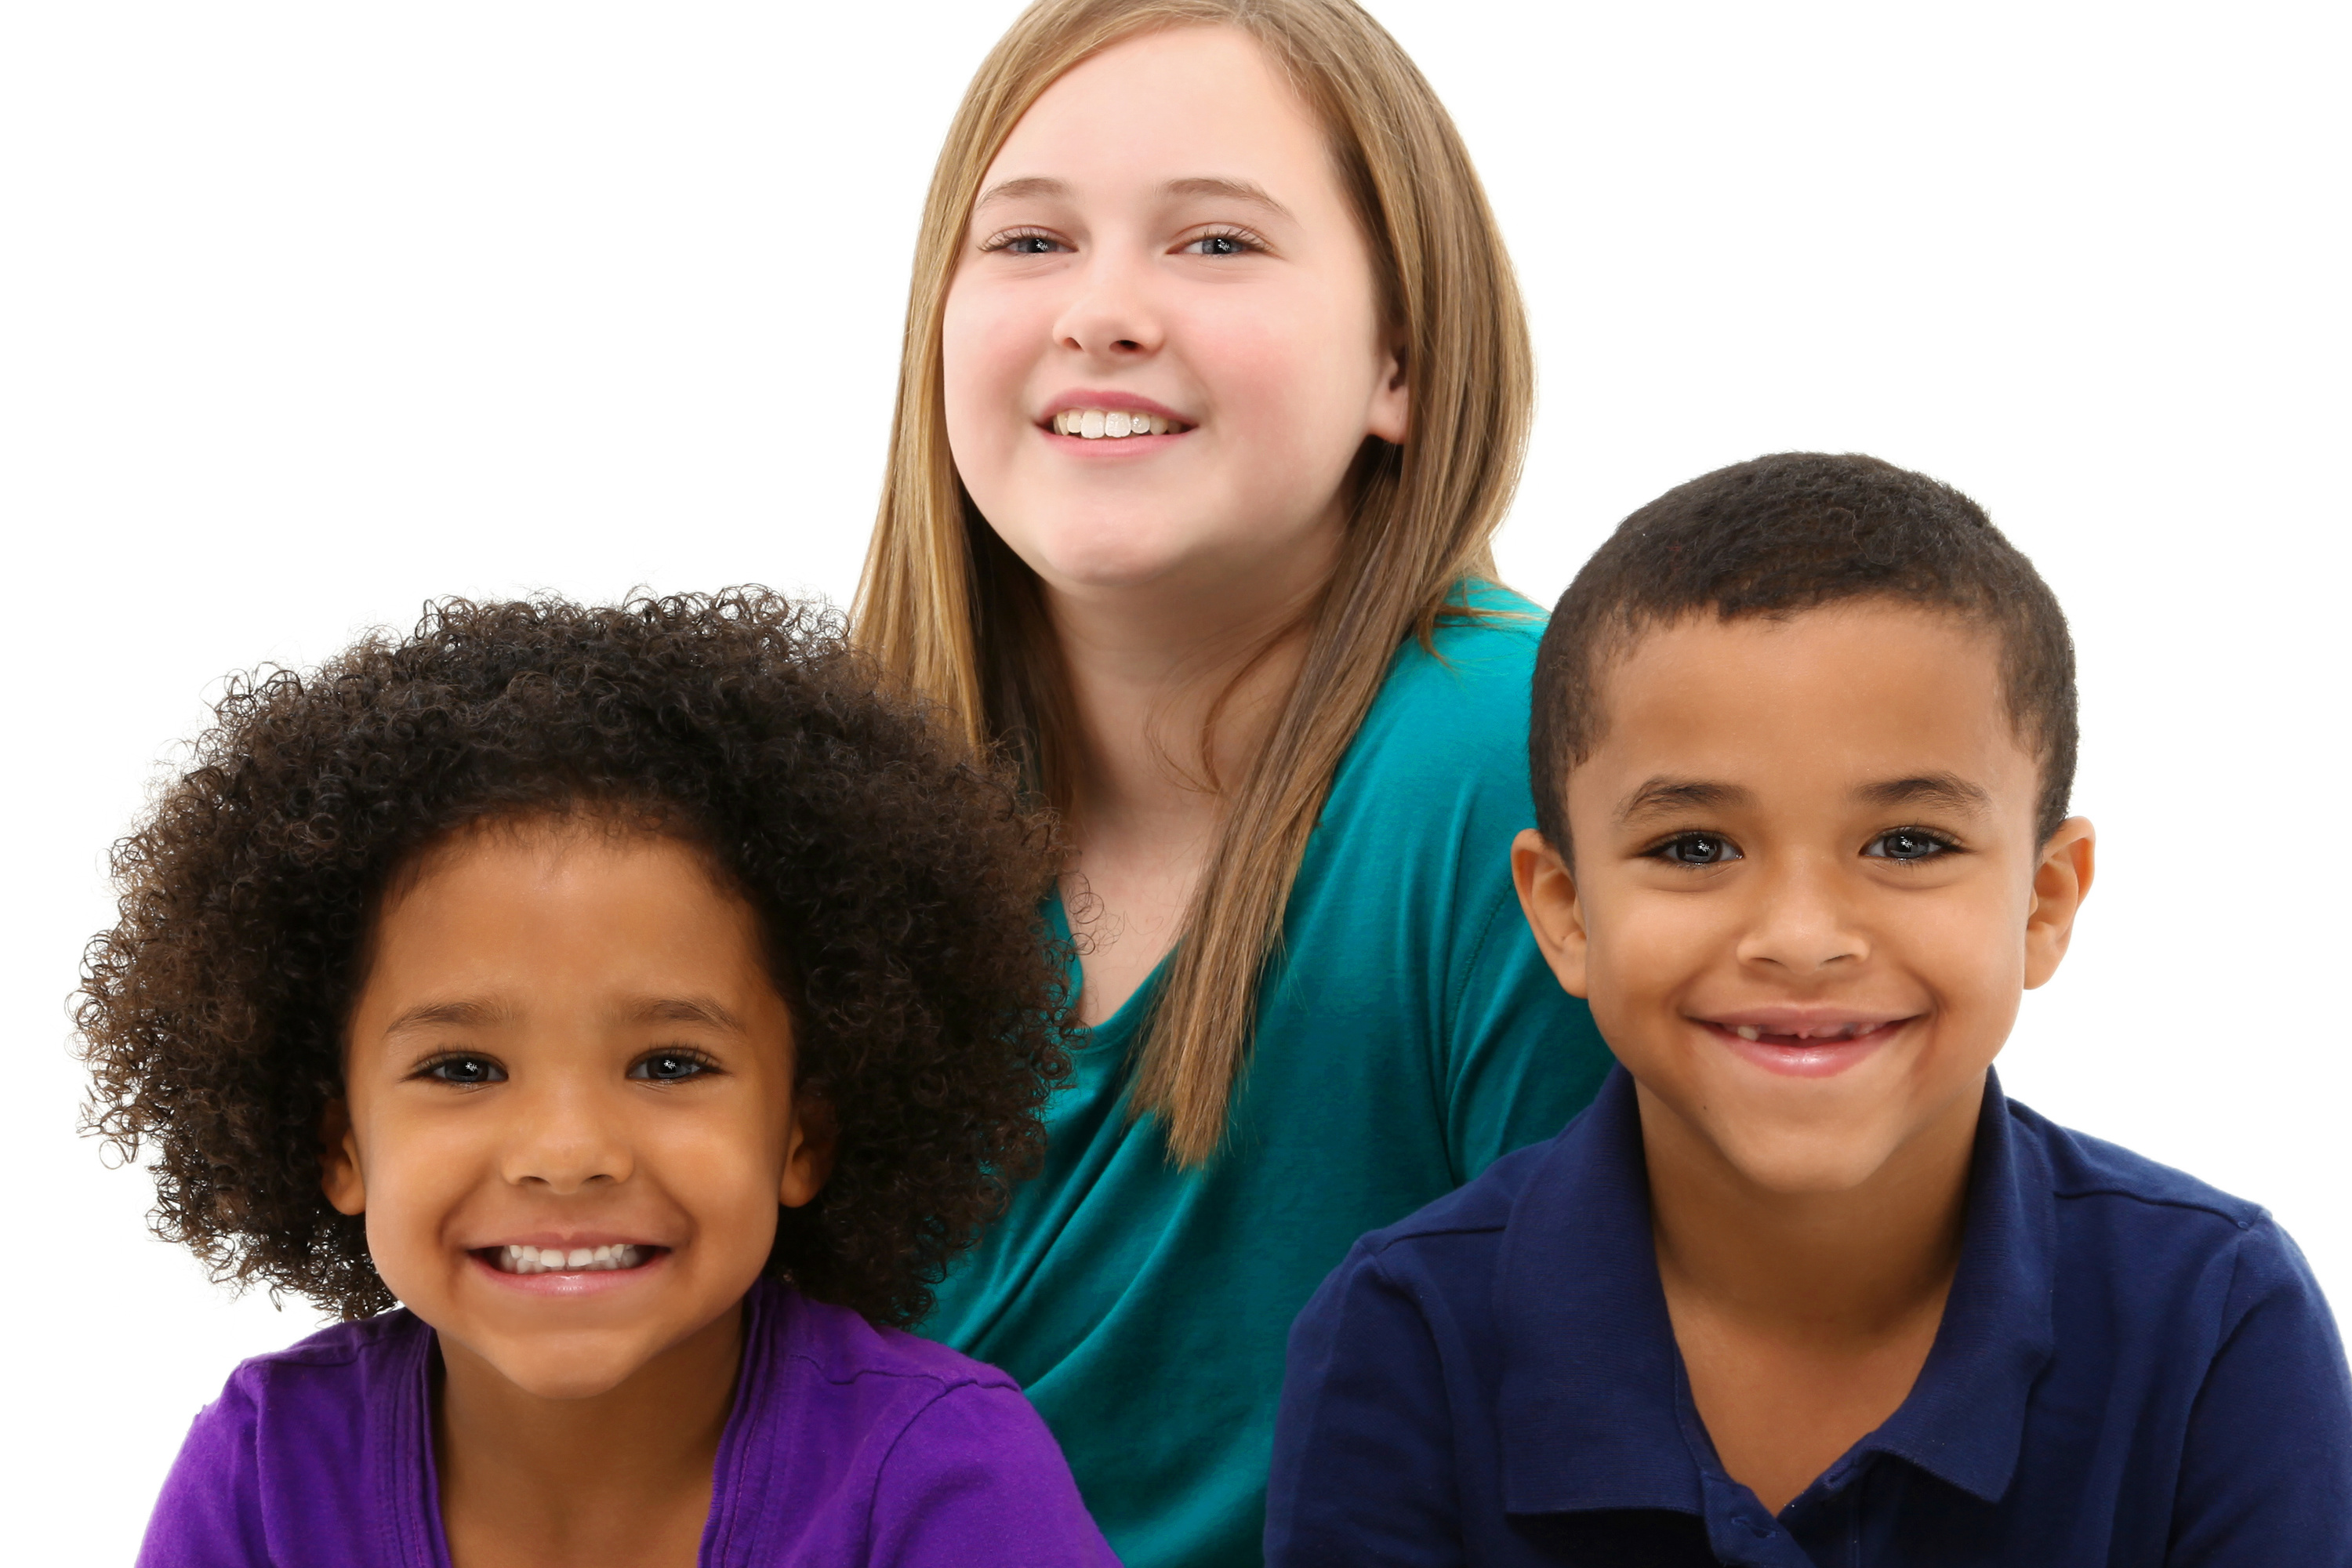 What Are The Legal Requirements For Child Adoption In